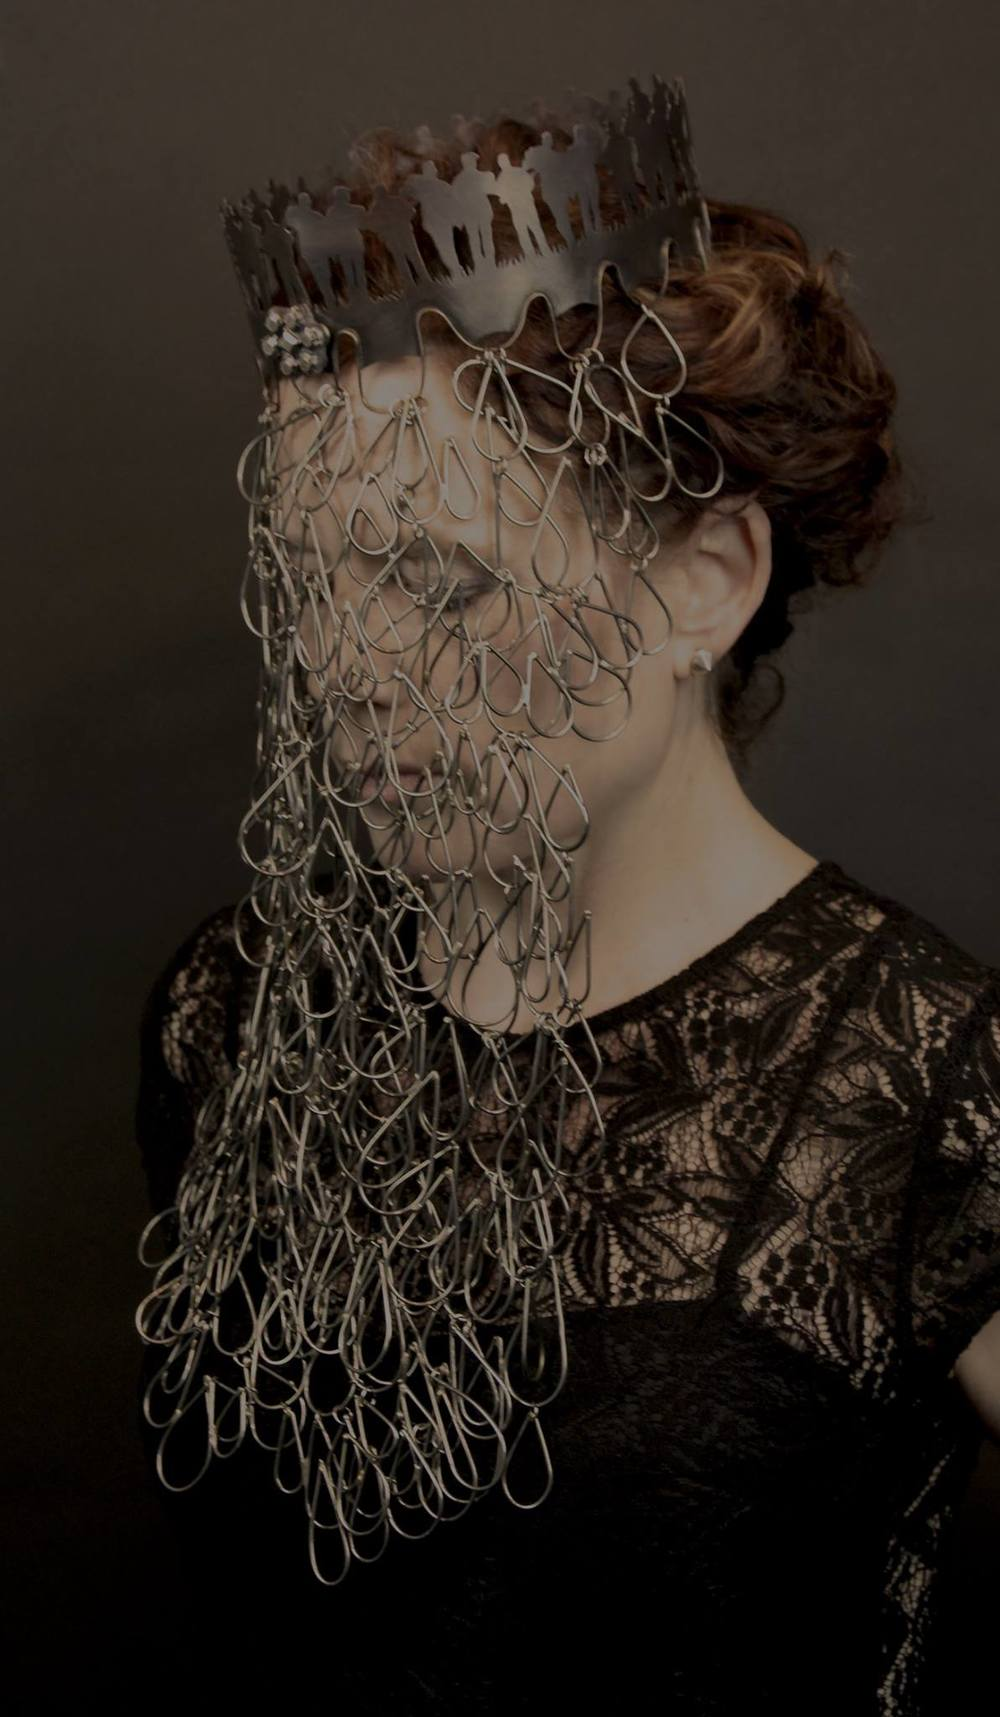 Veil #1 from Objects of Mourning by   Renee Zettle-Sterling   photographed by   Bree Mullen